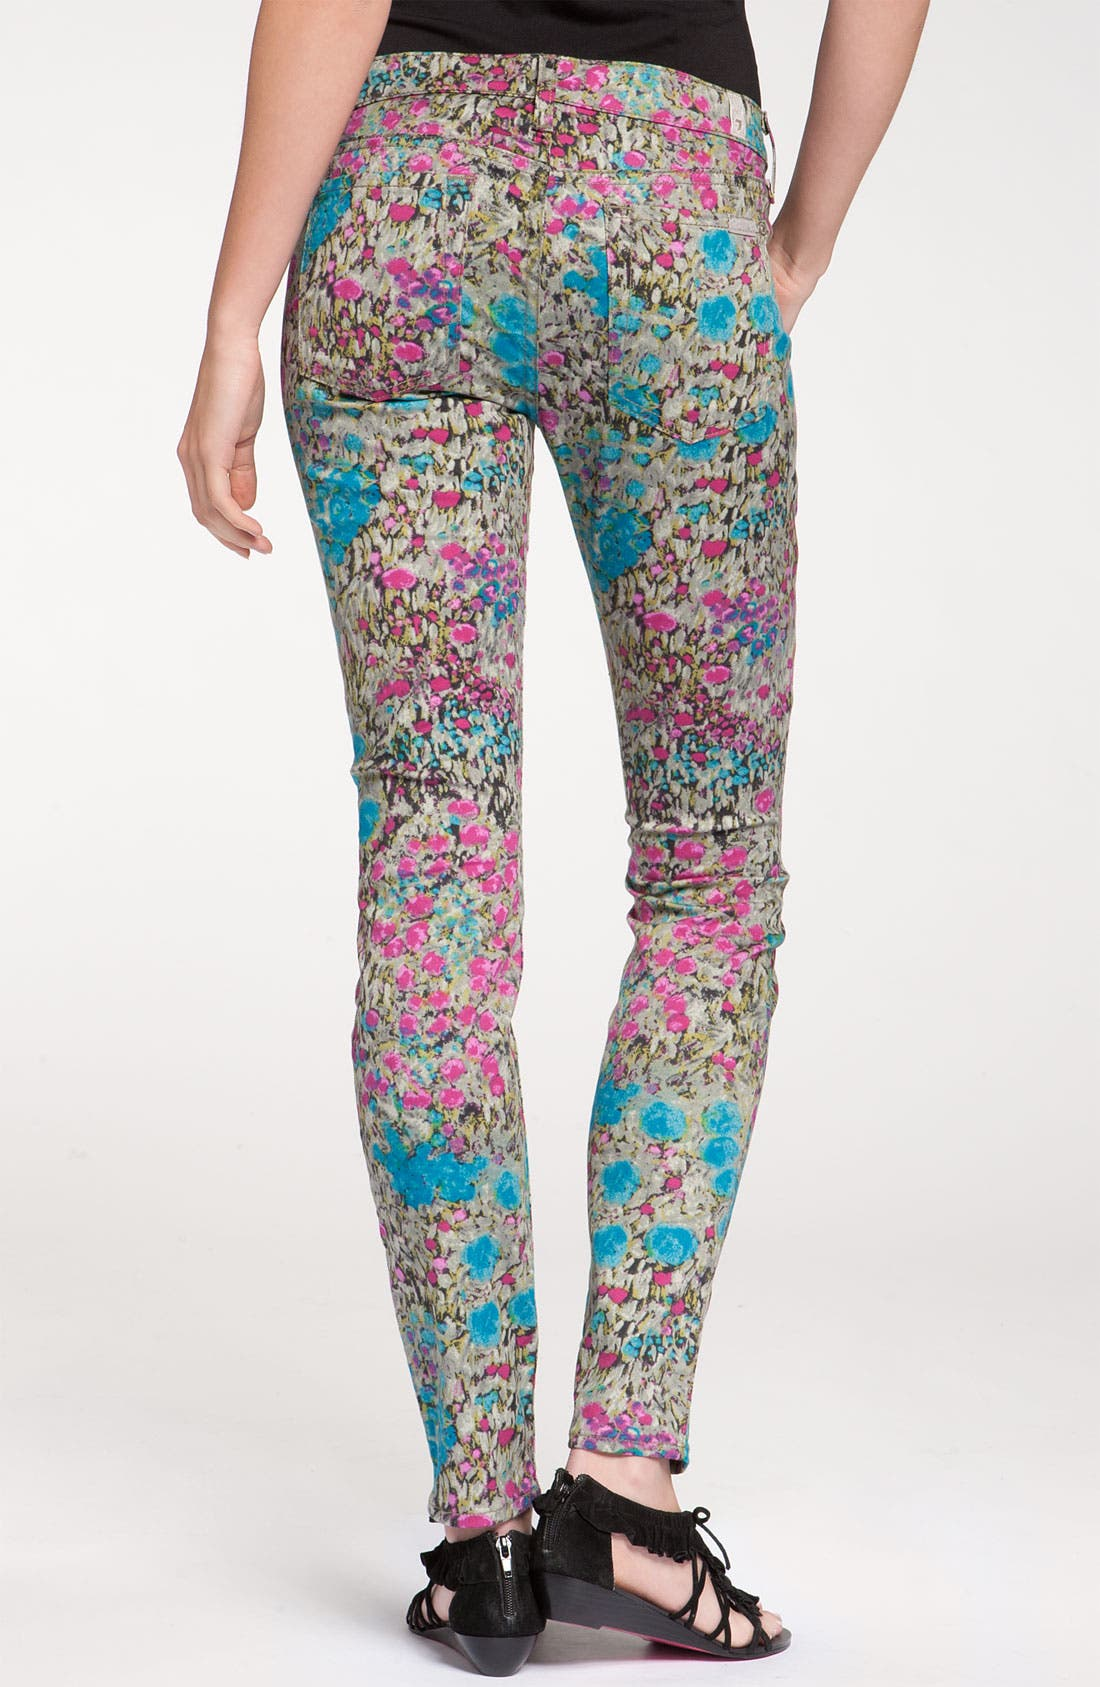 Alternate Image 1 Selected - 7 For All Mankind® 'The Skinny' Print Jeans (Garden Party Floral)